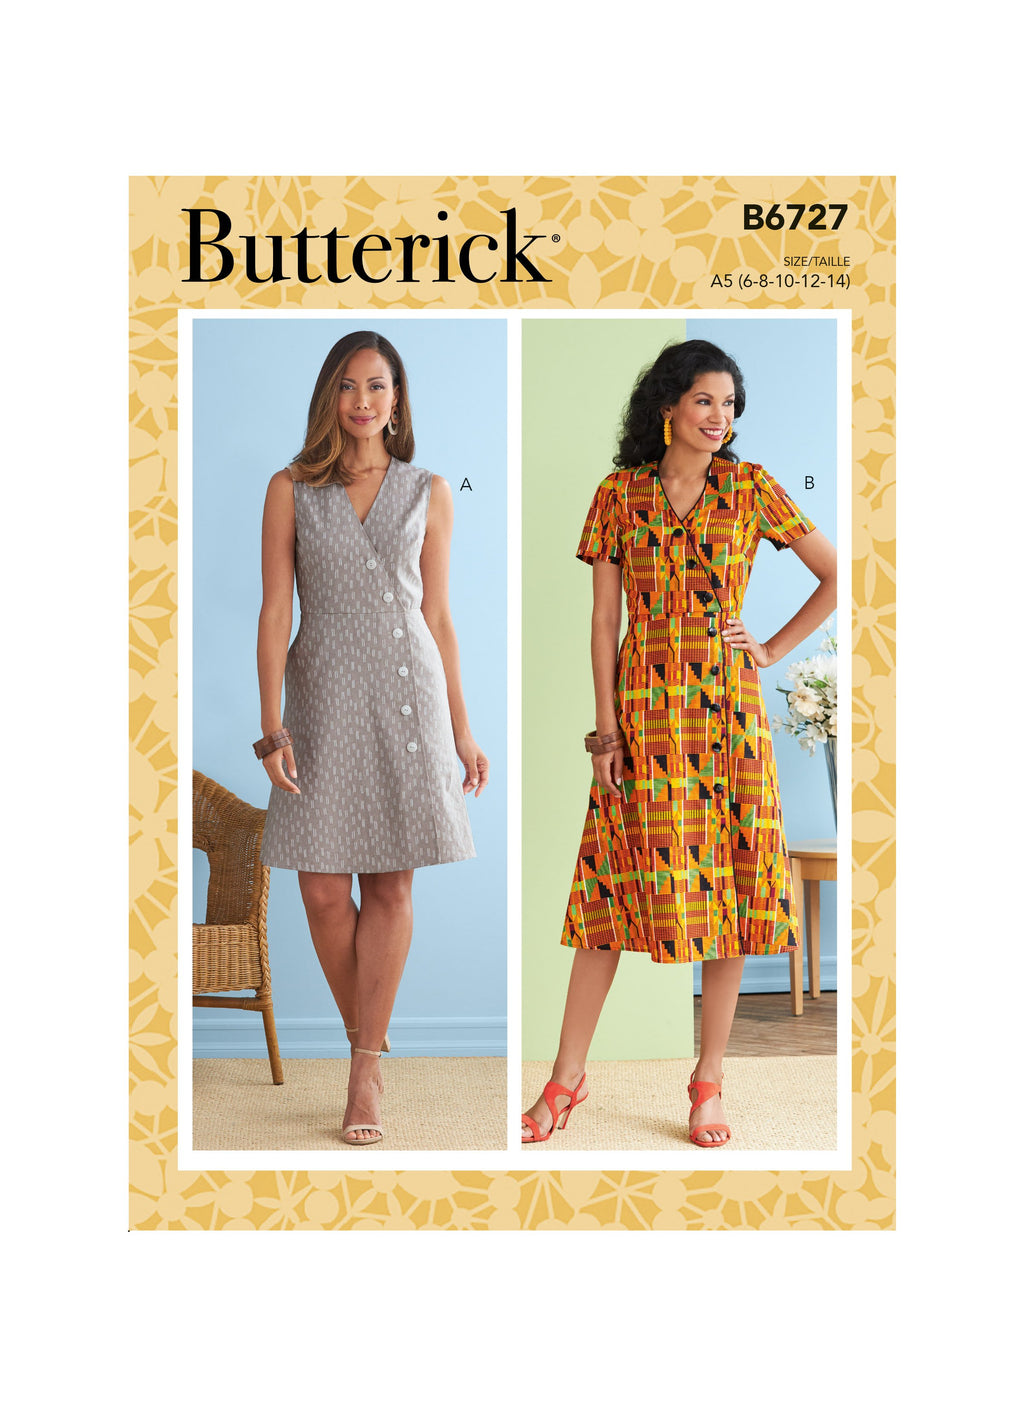 Butterick Sewing Pattern 6727 Misses' Dresses